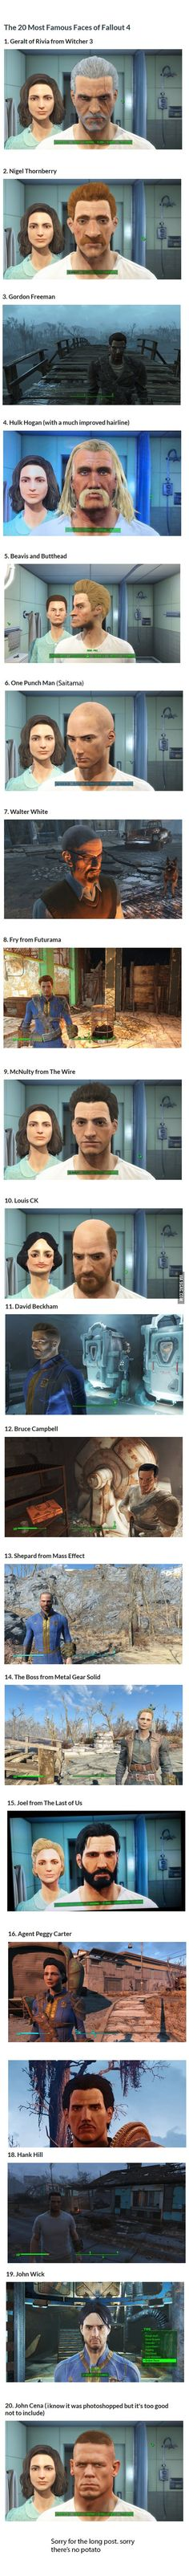 The 20 Most Famous Faces of Fallout 4 - www.viralpx.com